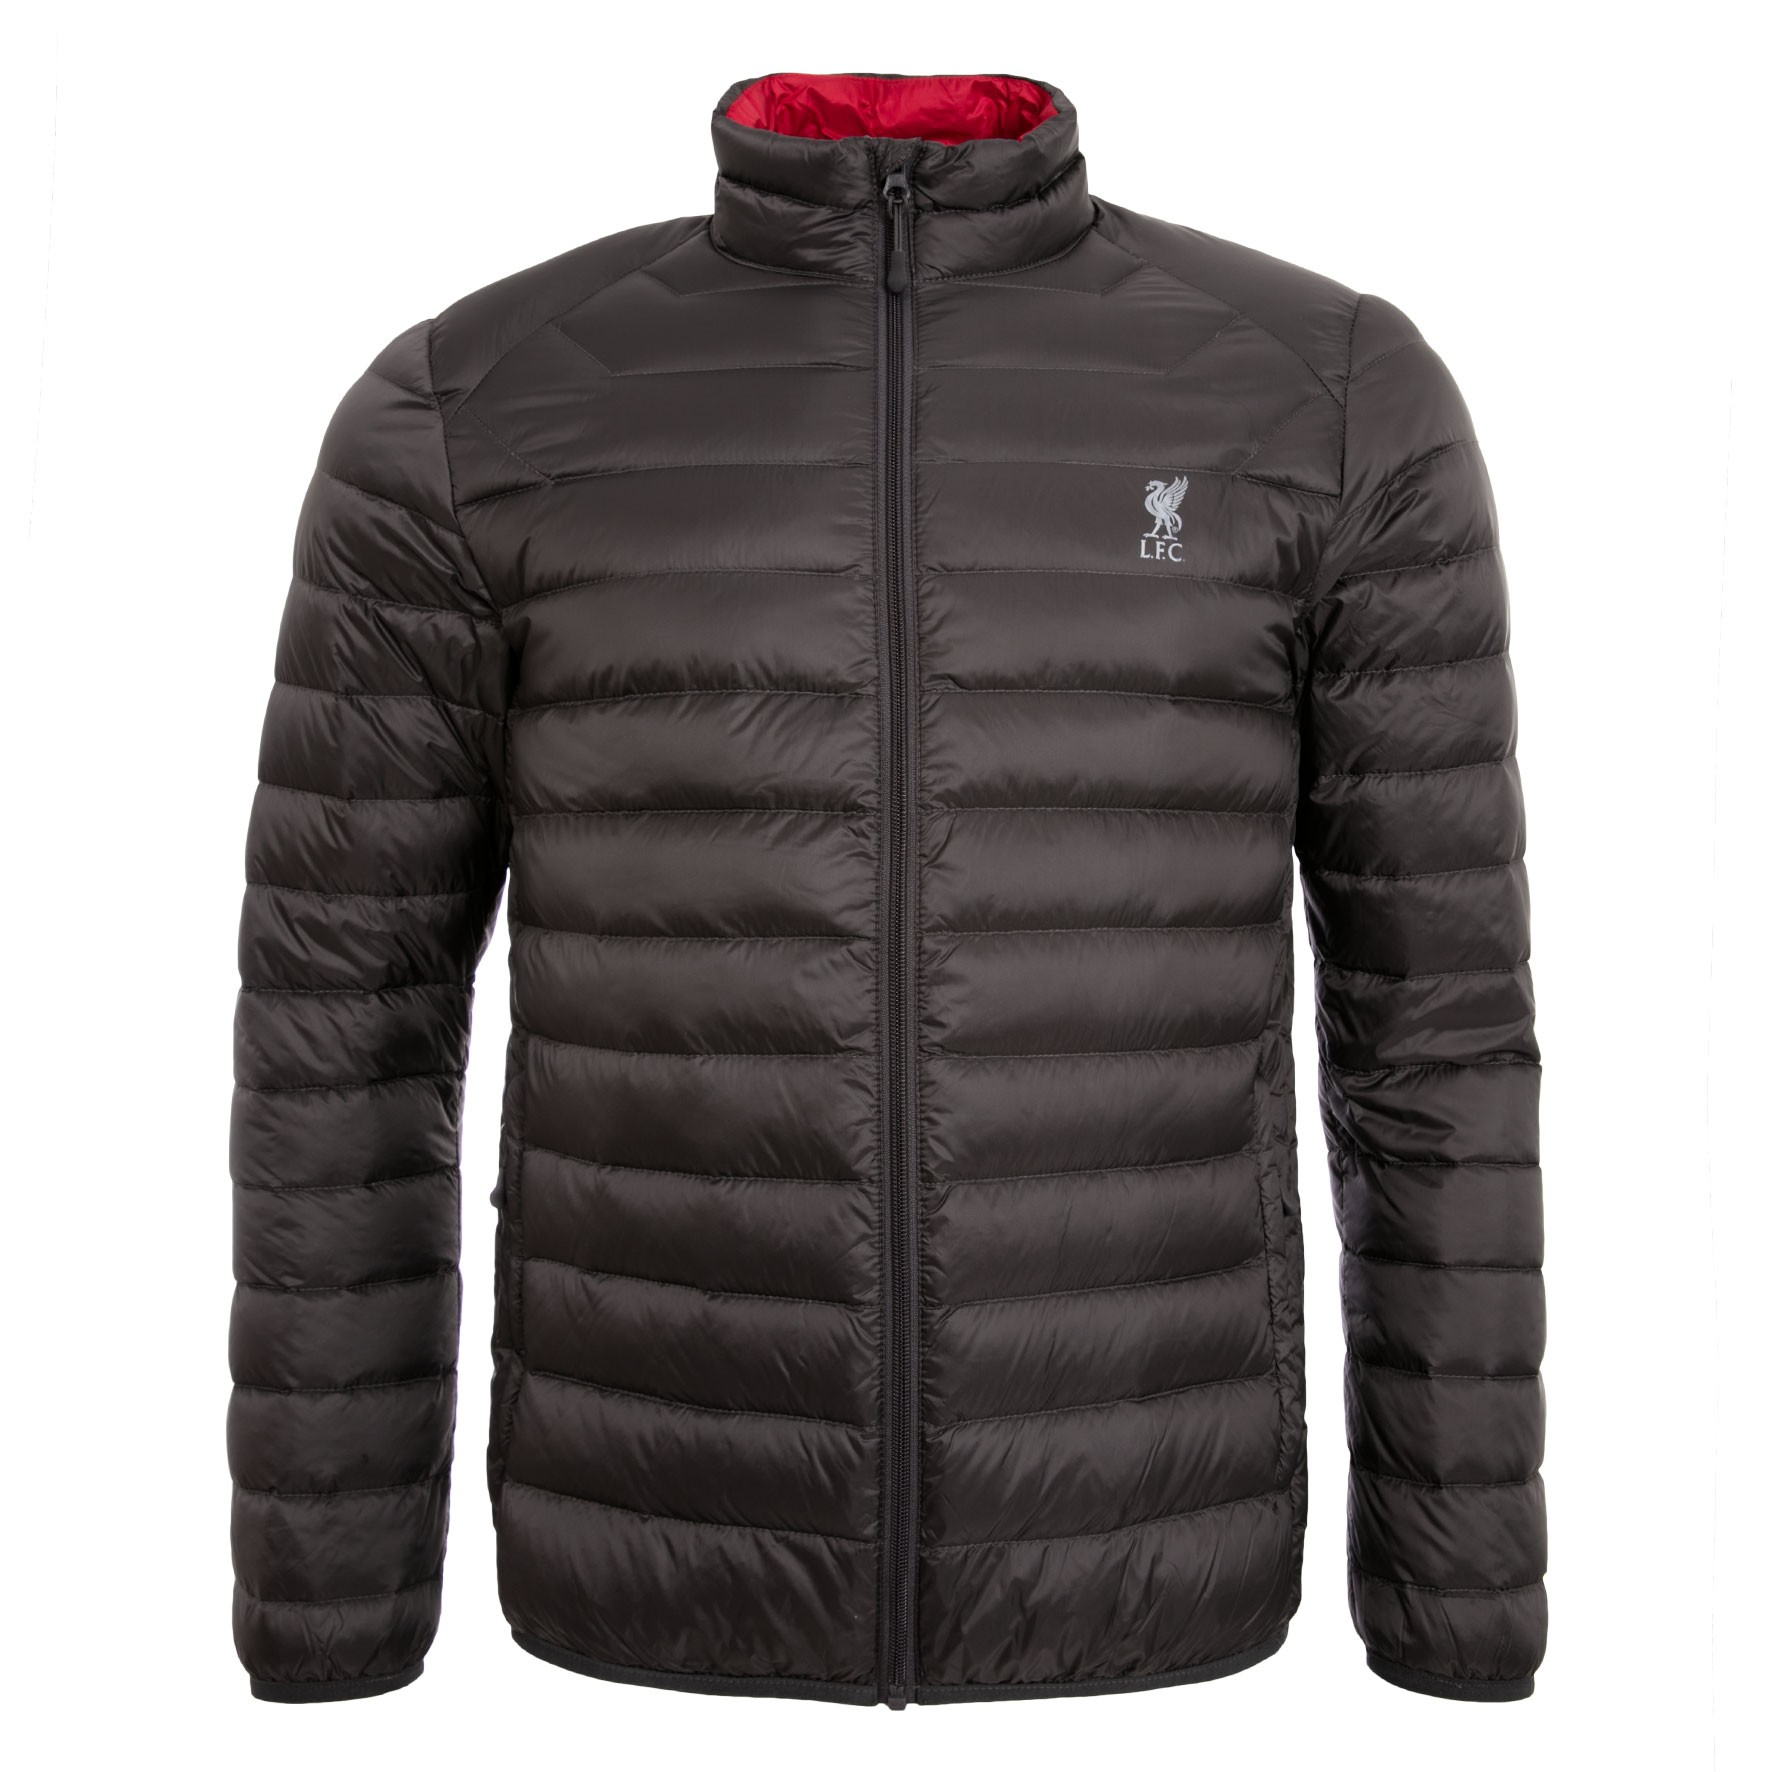 LFC Mens Charcoal Packaway Puffa Jacket